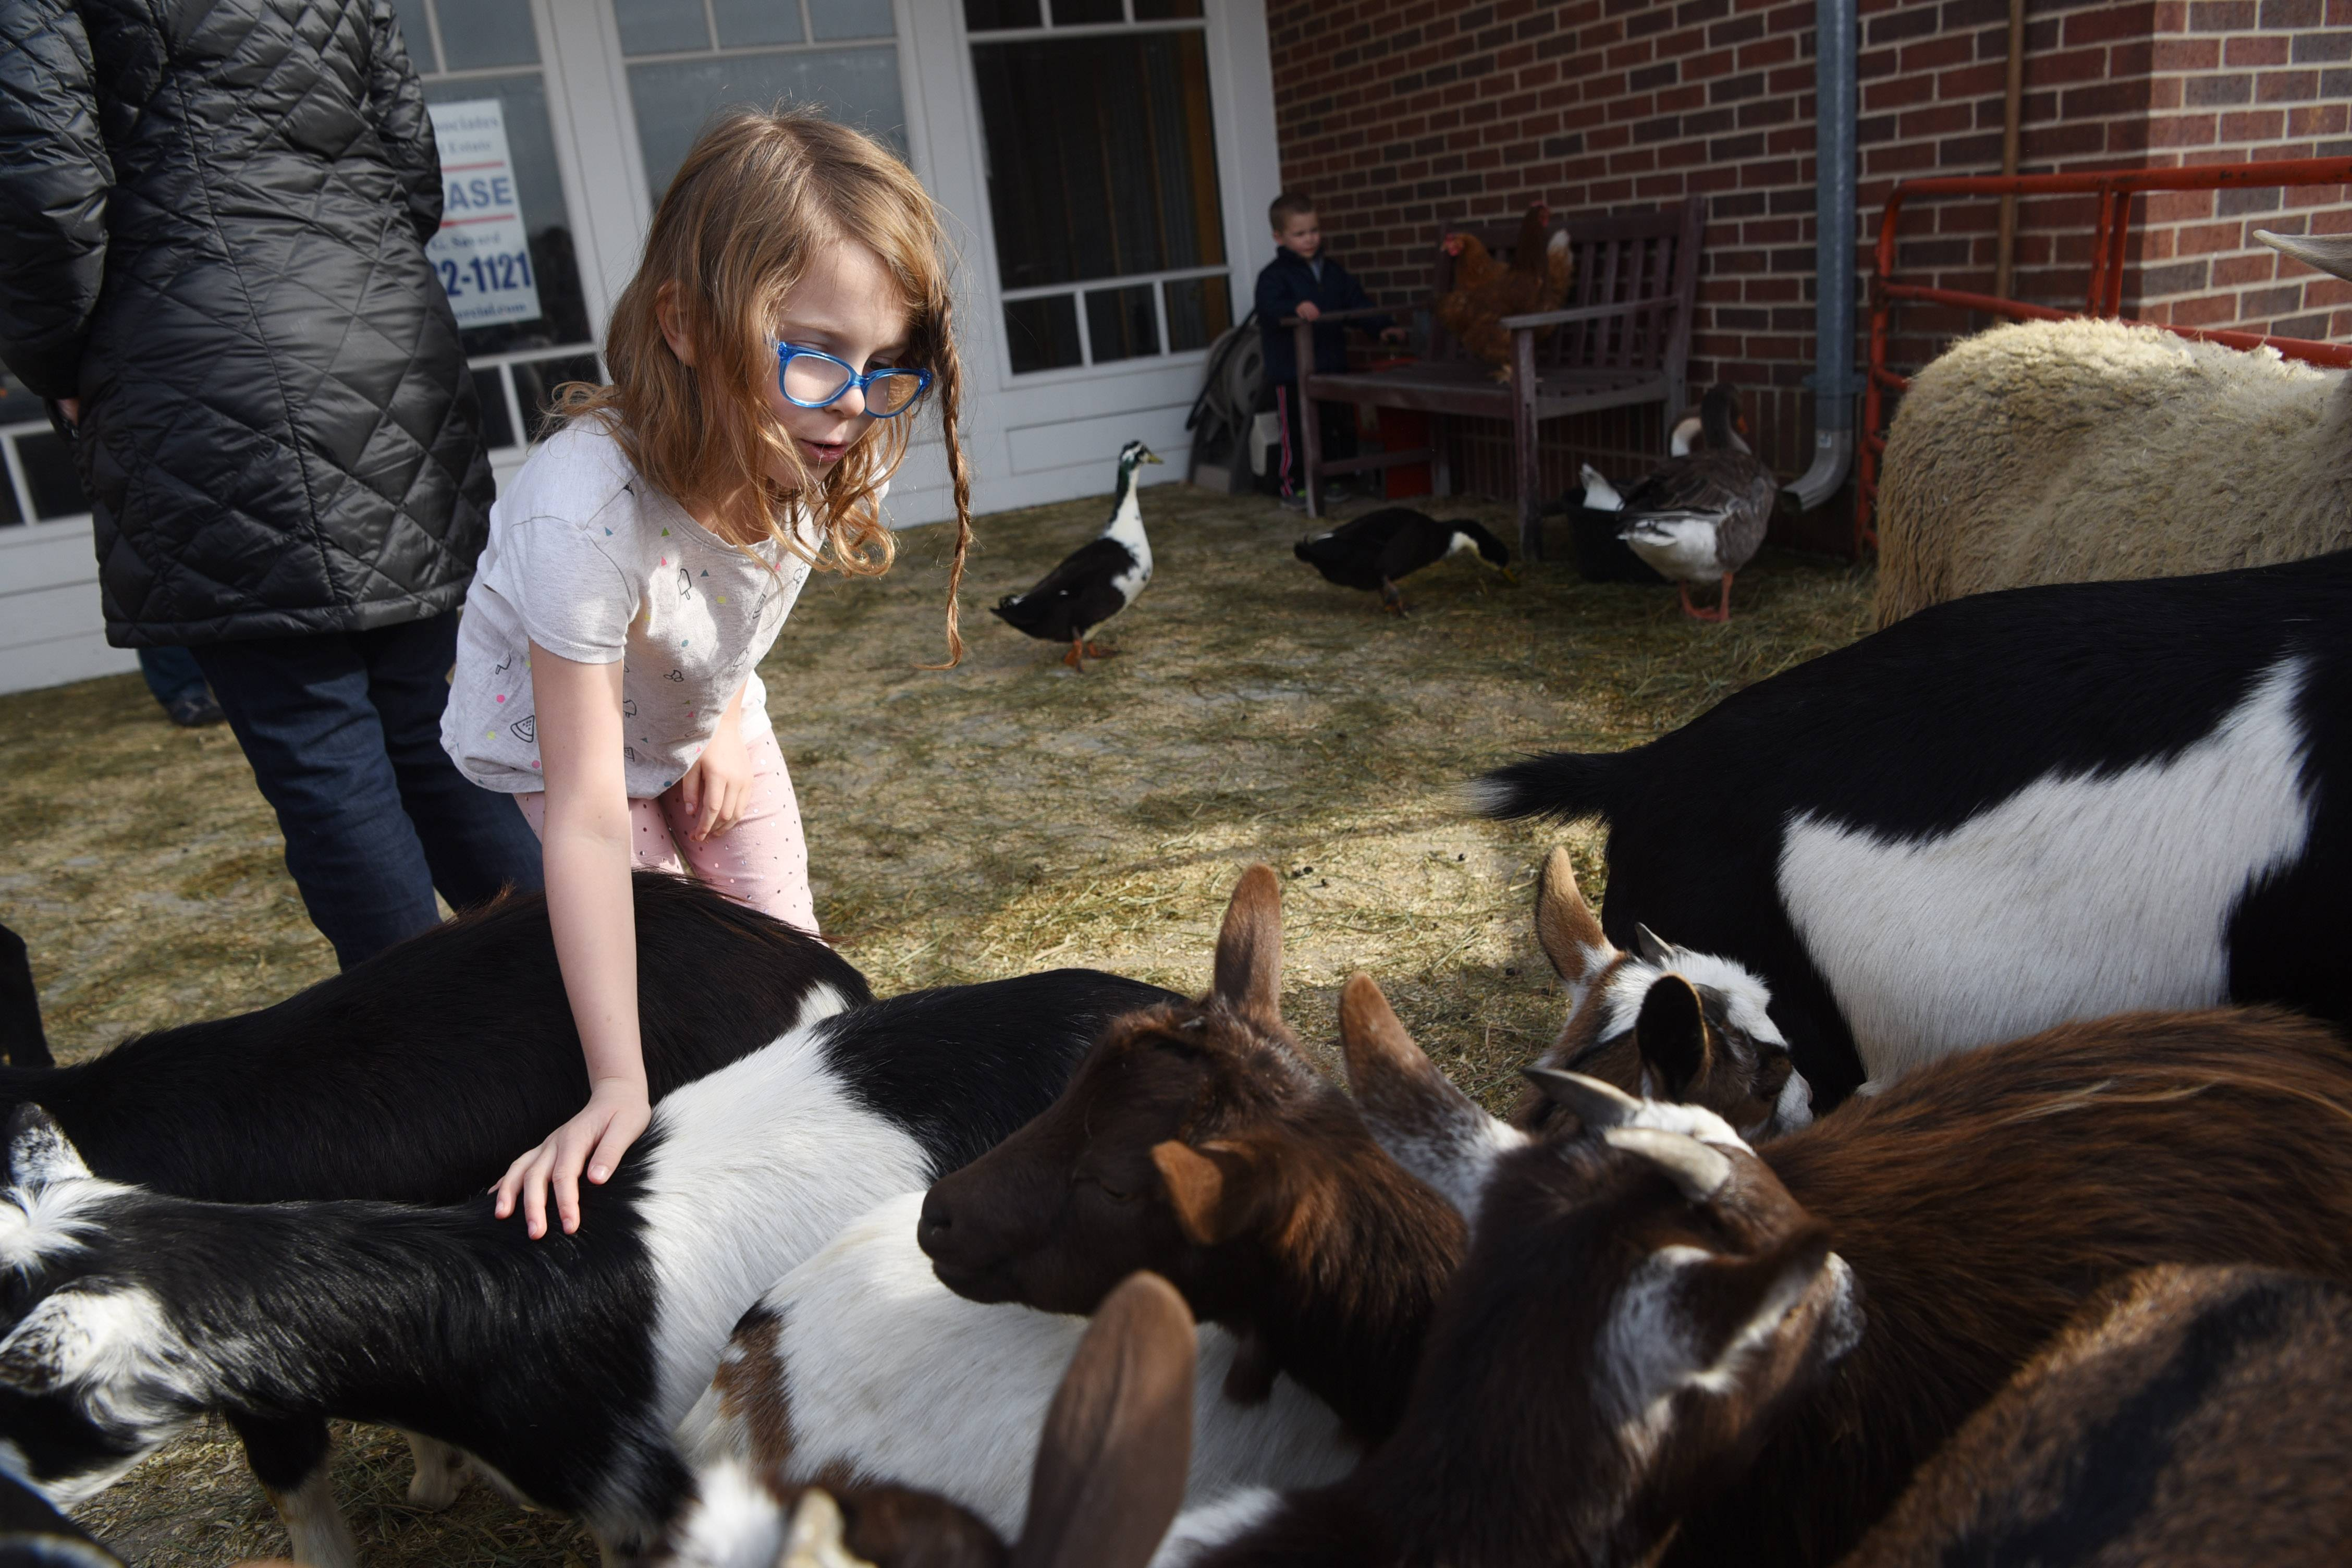 Kendall Lohmeyer, 8, of Barrington pets goats during the Home for the Holidays celebration at the Foundry shopping center in Barrington Saturday.